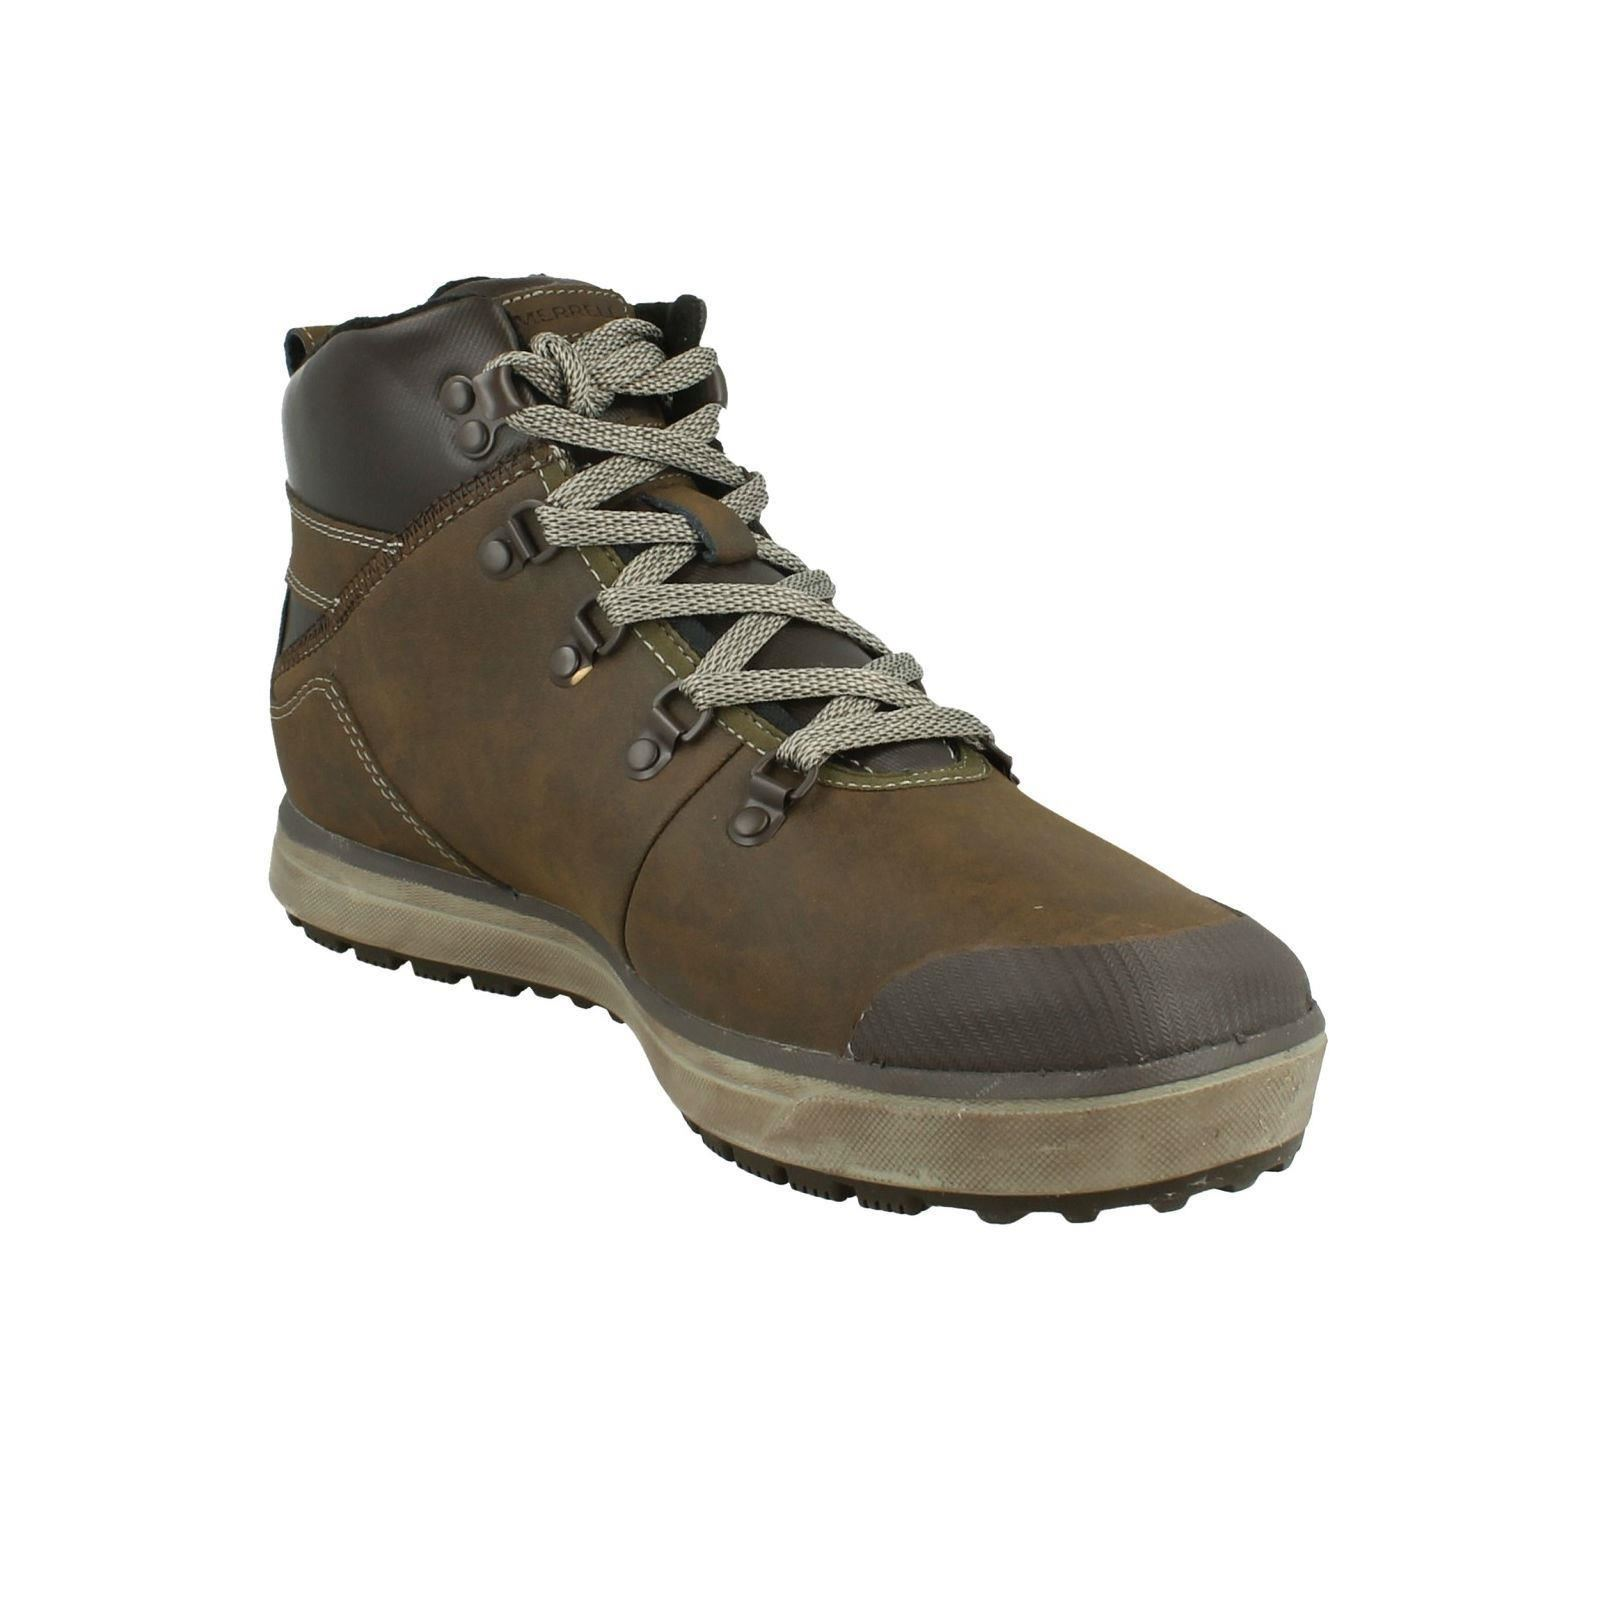 Herren Merrell Turku Trek Waterproof Mid Mid Mid Hiking Walking Stiefel- Label J23627 133608